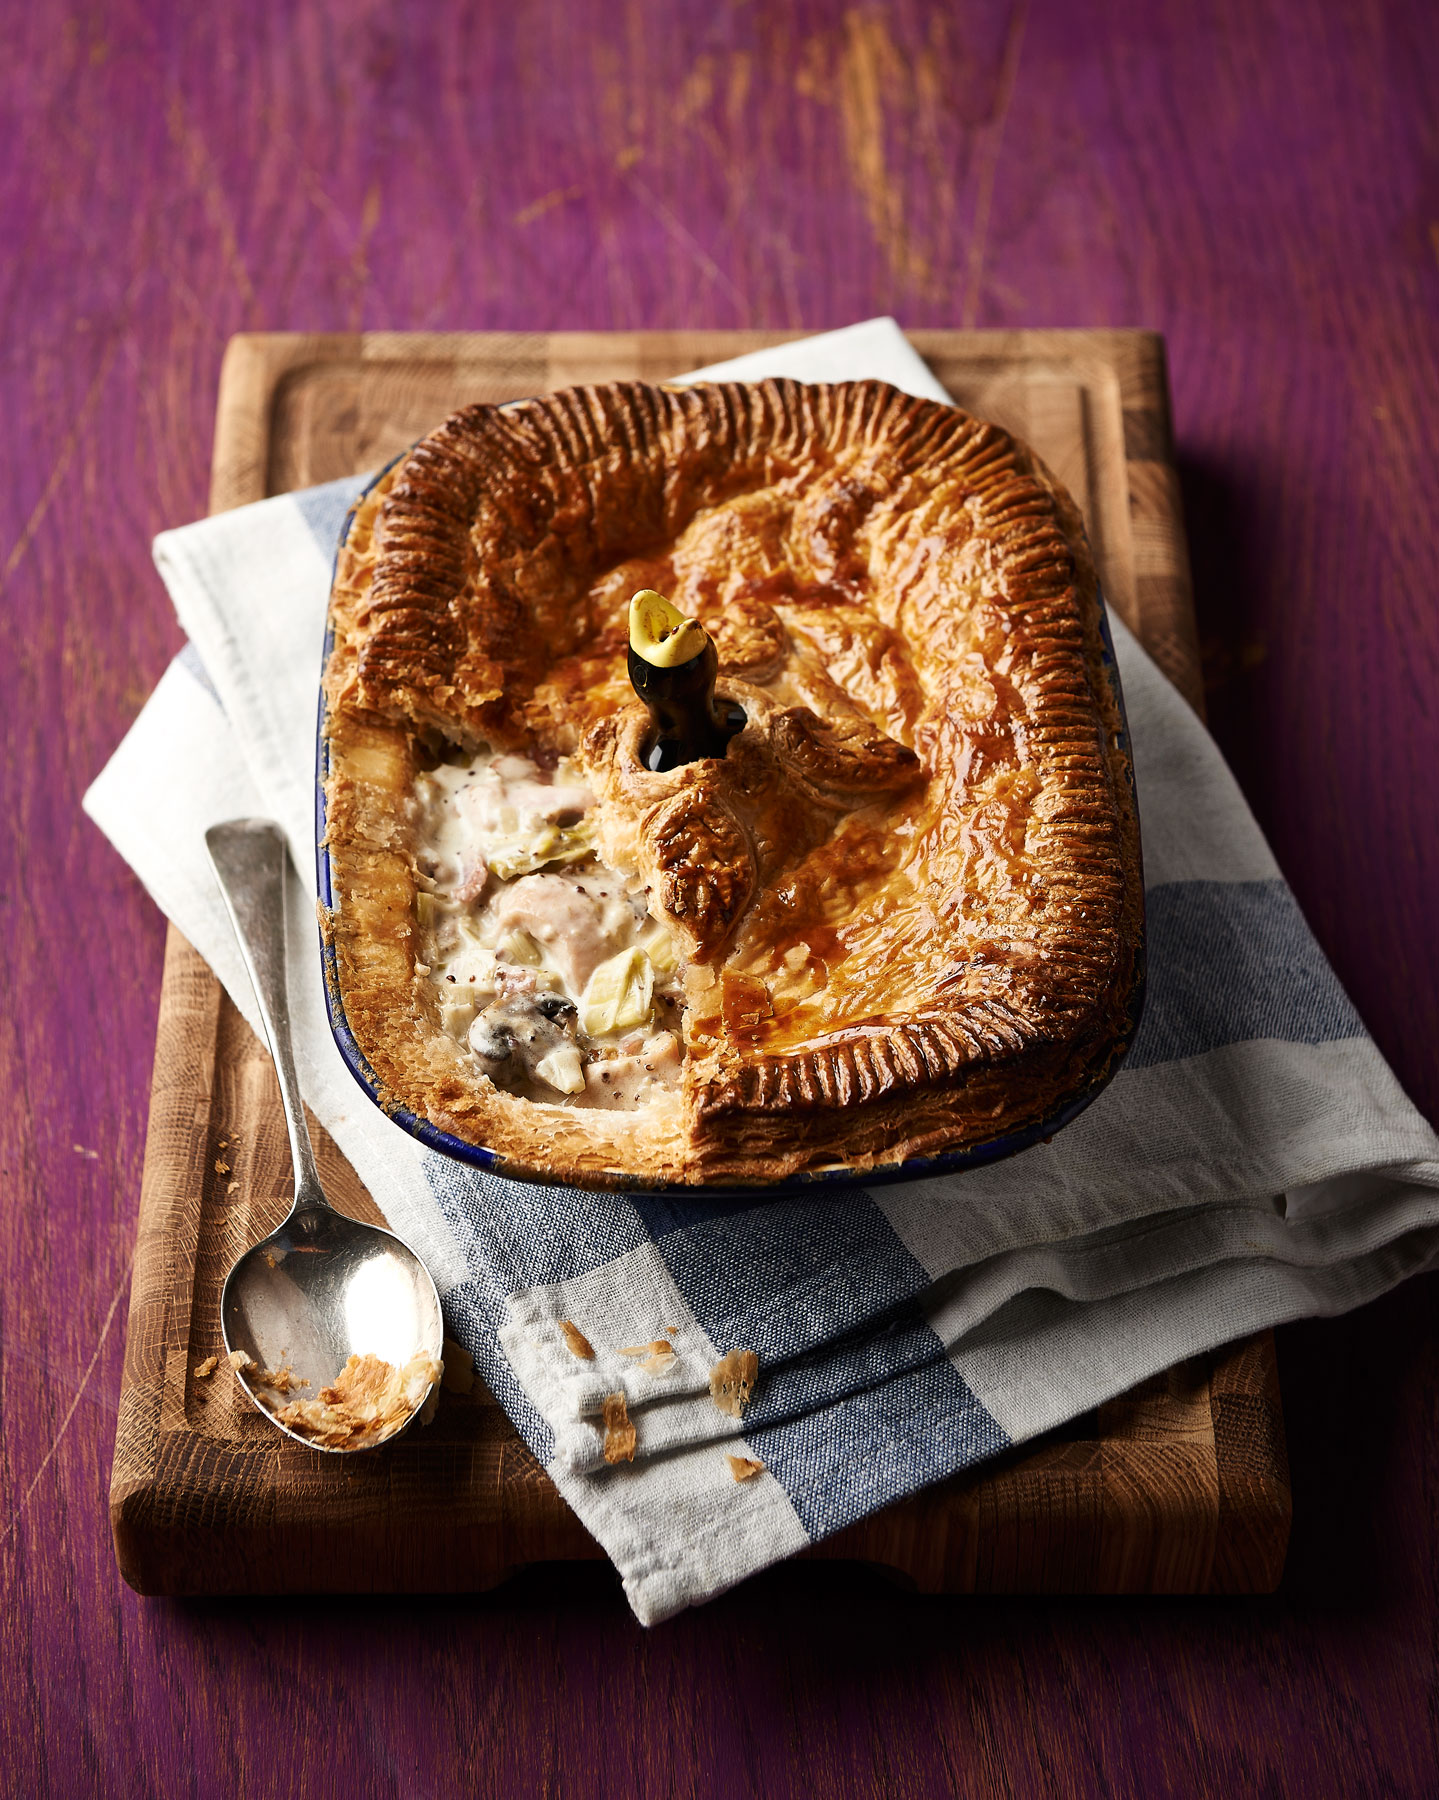 Chicken and leek pie on a purple background